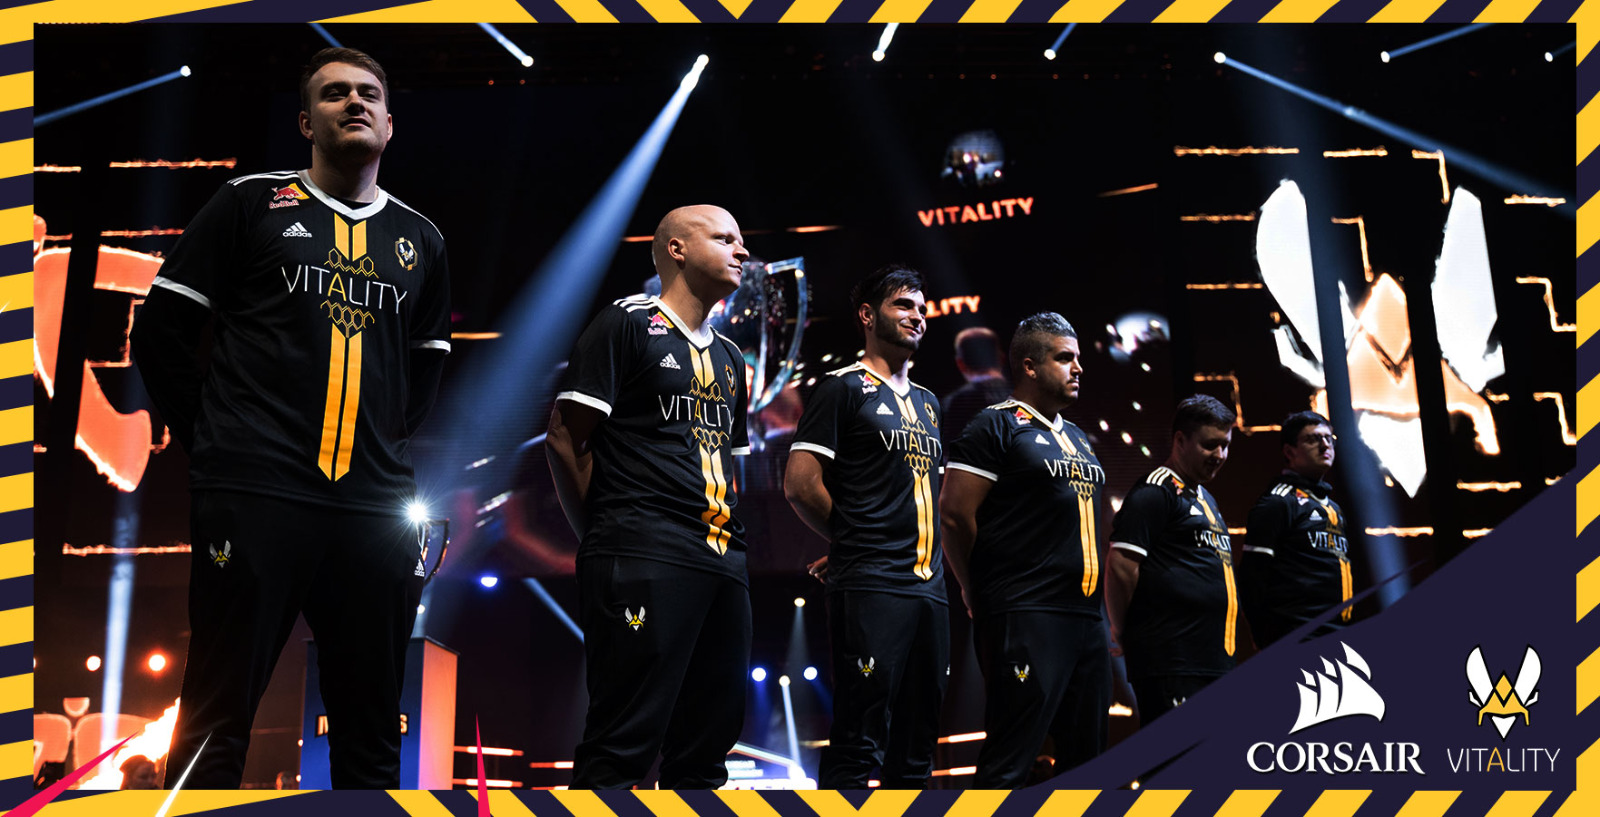 Team Vitality CORSAIR